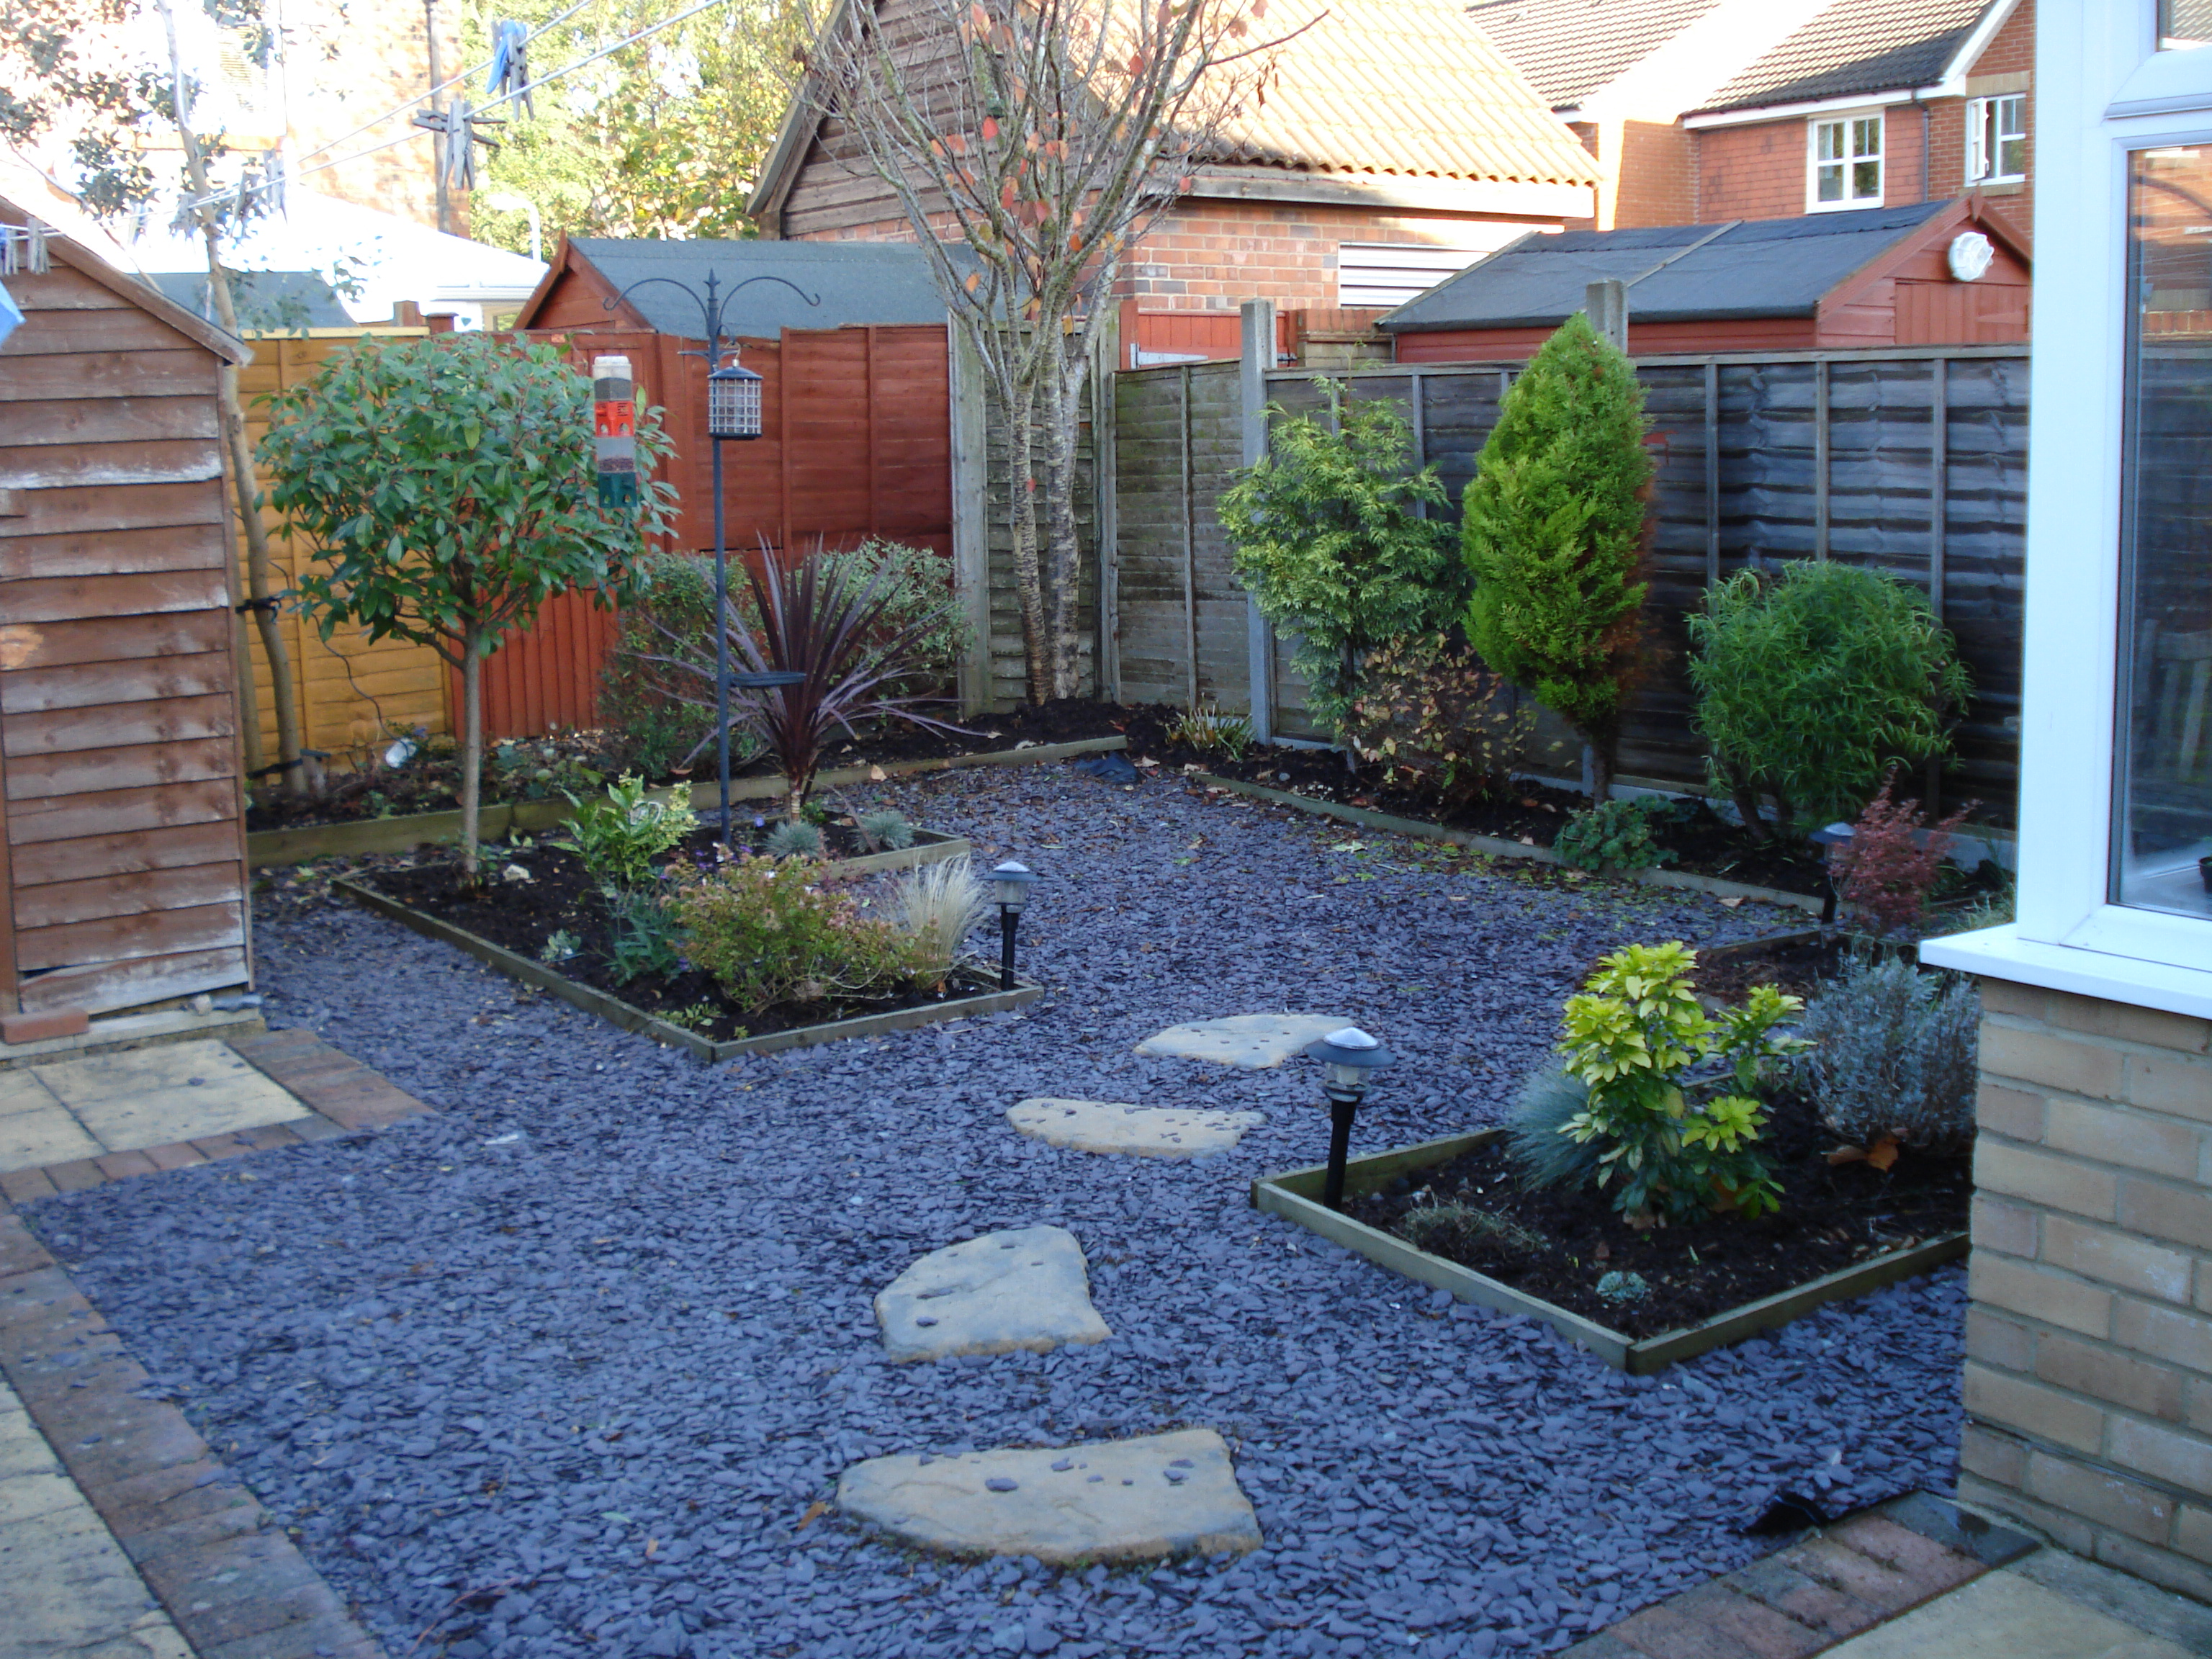 back garden wikidwelling fandom powered by wikia On garden design ideas no grass